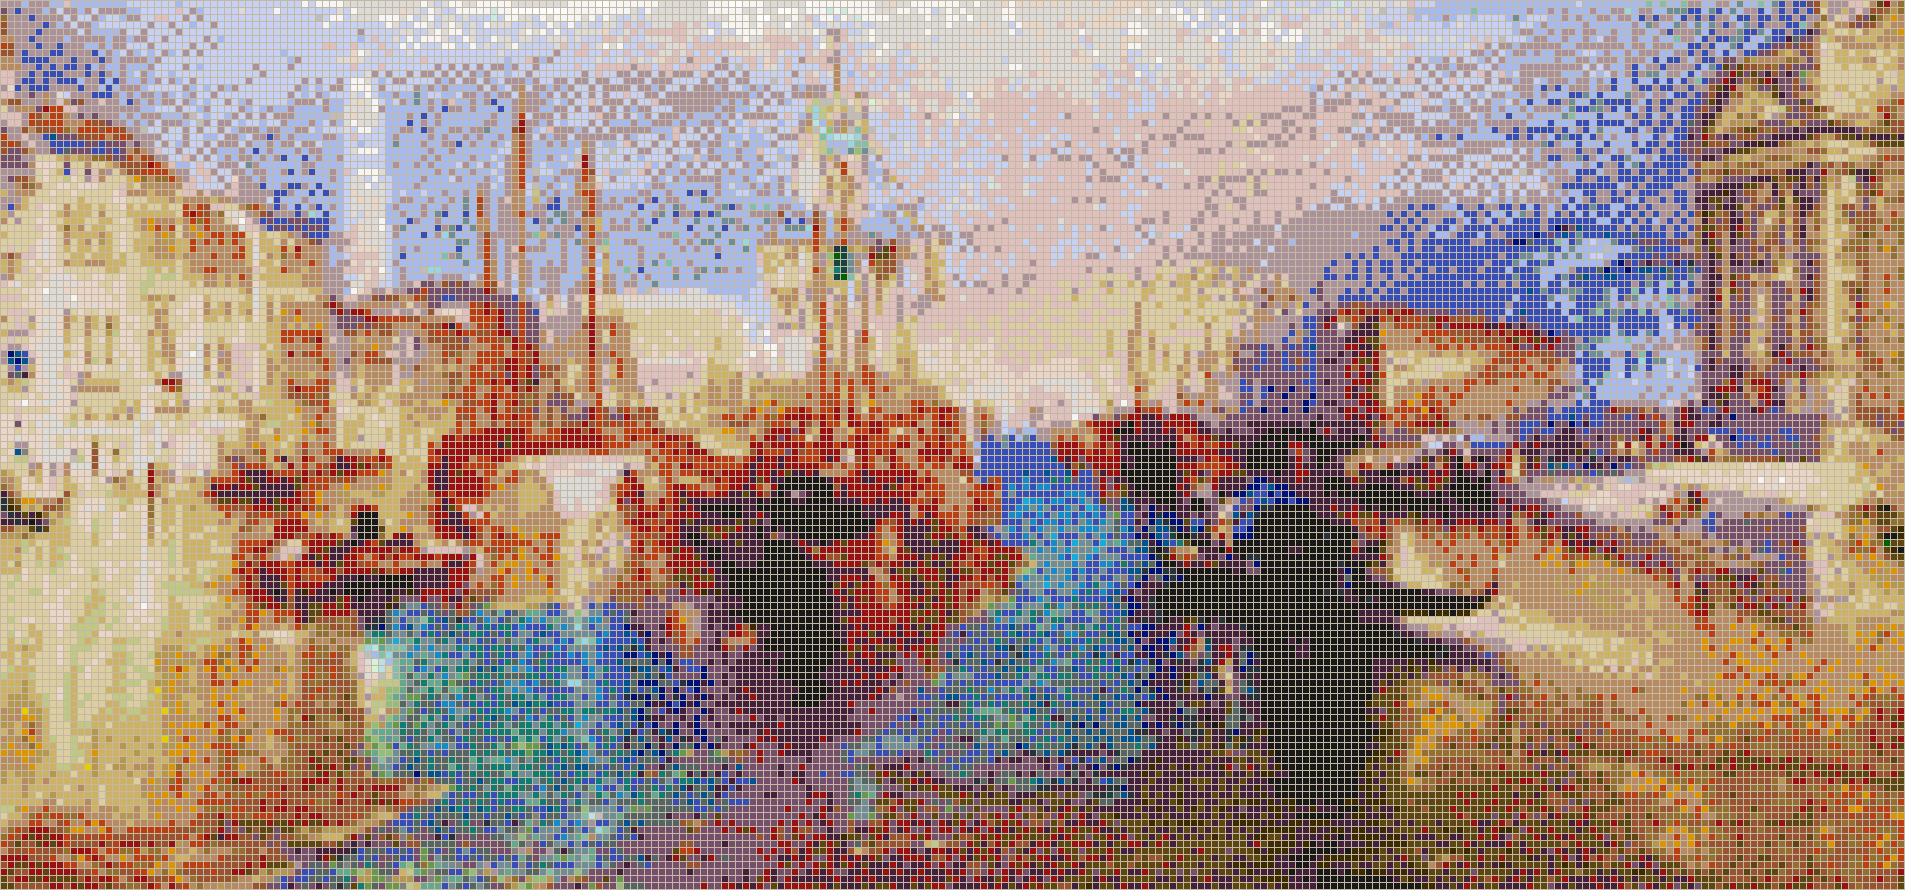 The Grand Canal, Venice (Turner) - Mosaic Tile Picture Art